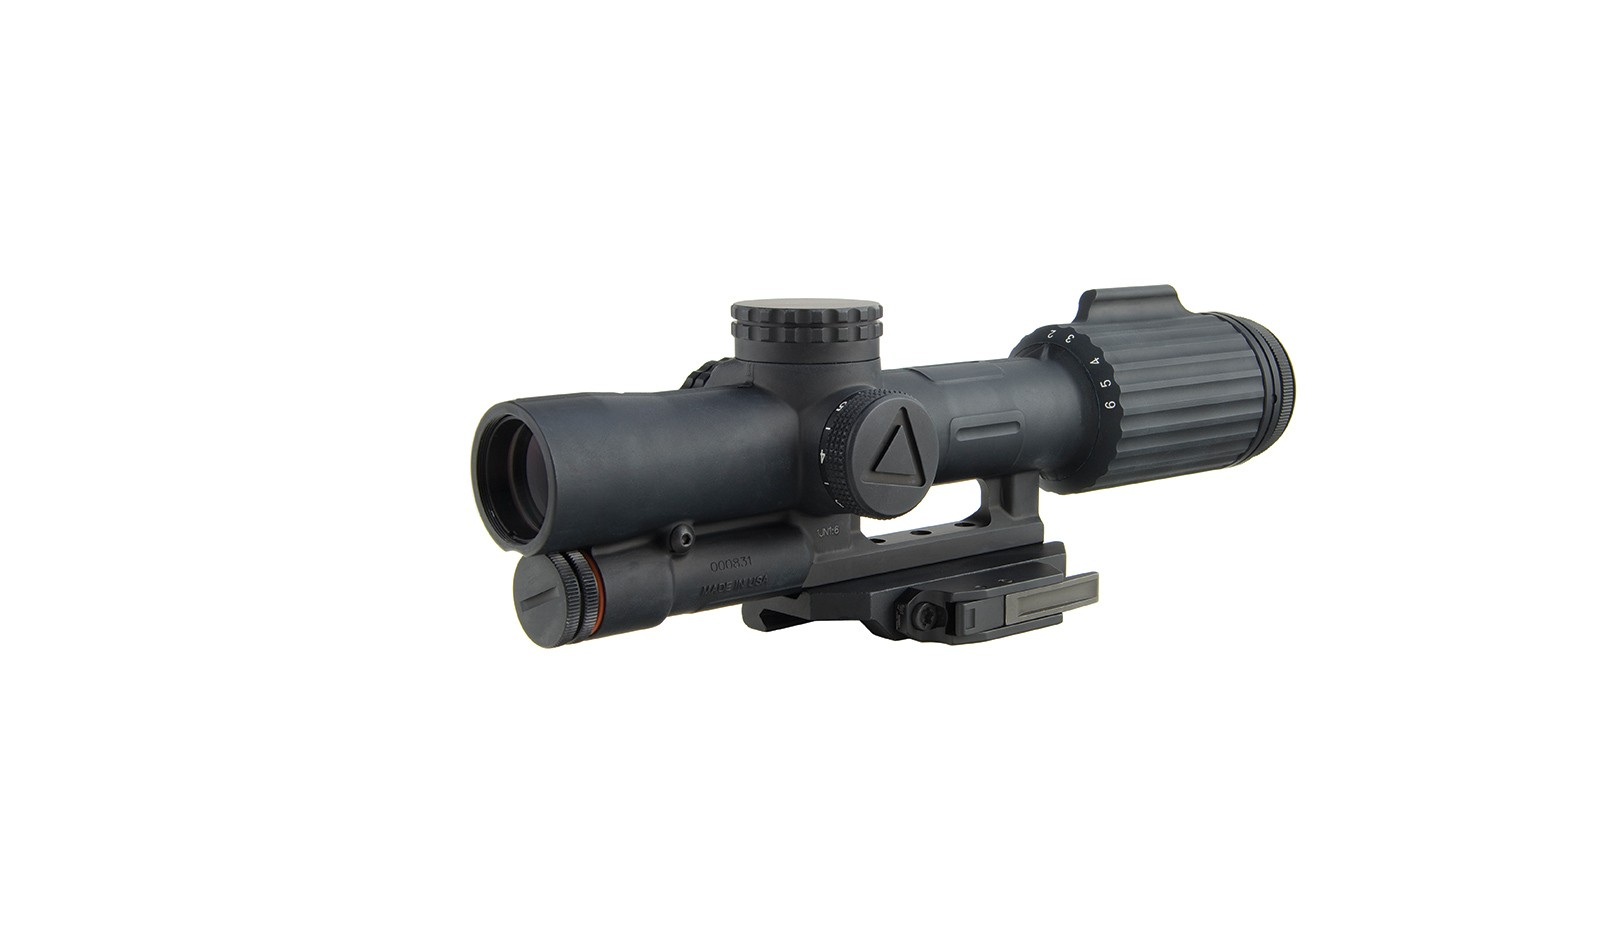 Trijicon VCOG® 1-6x24 LED Riflescope - .223 / 55 Grain